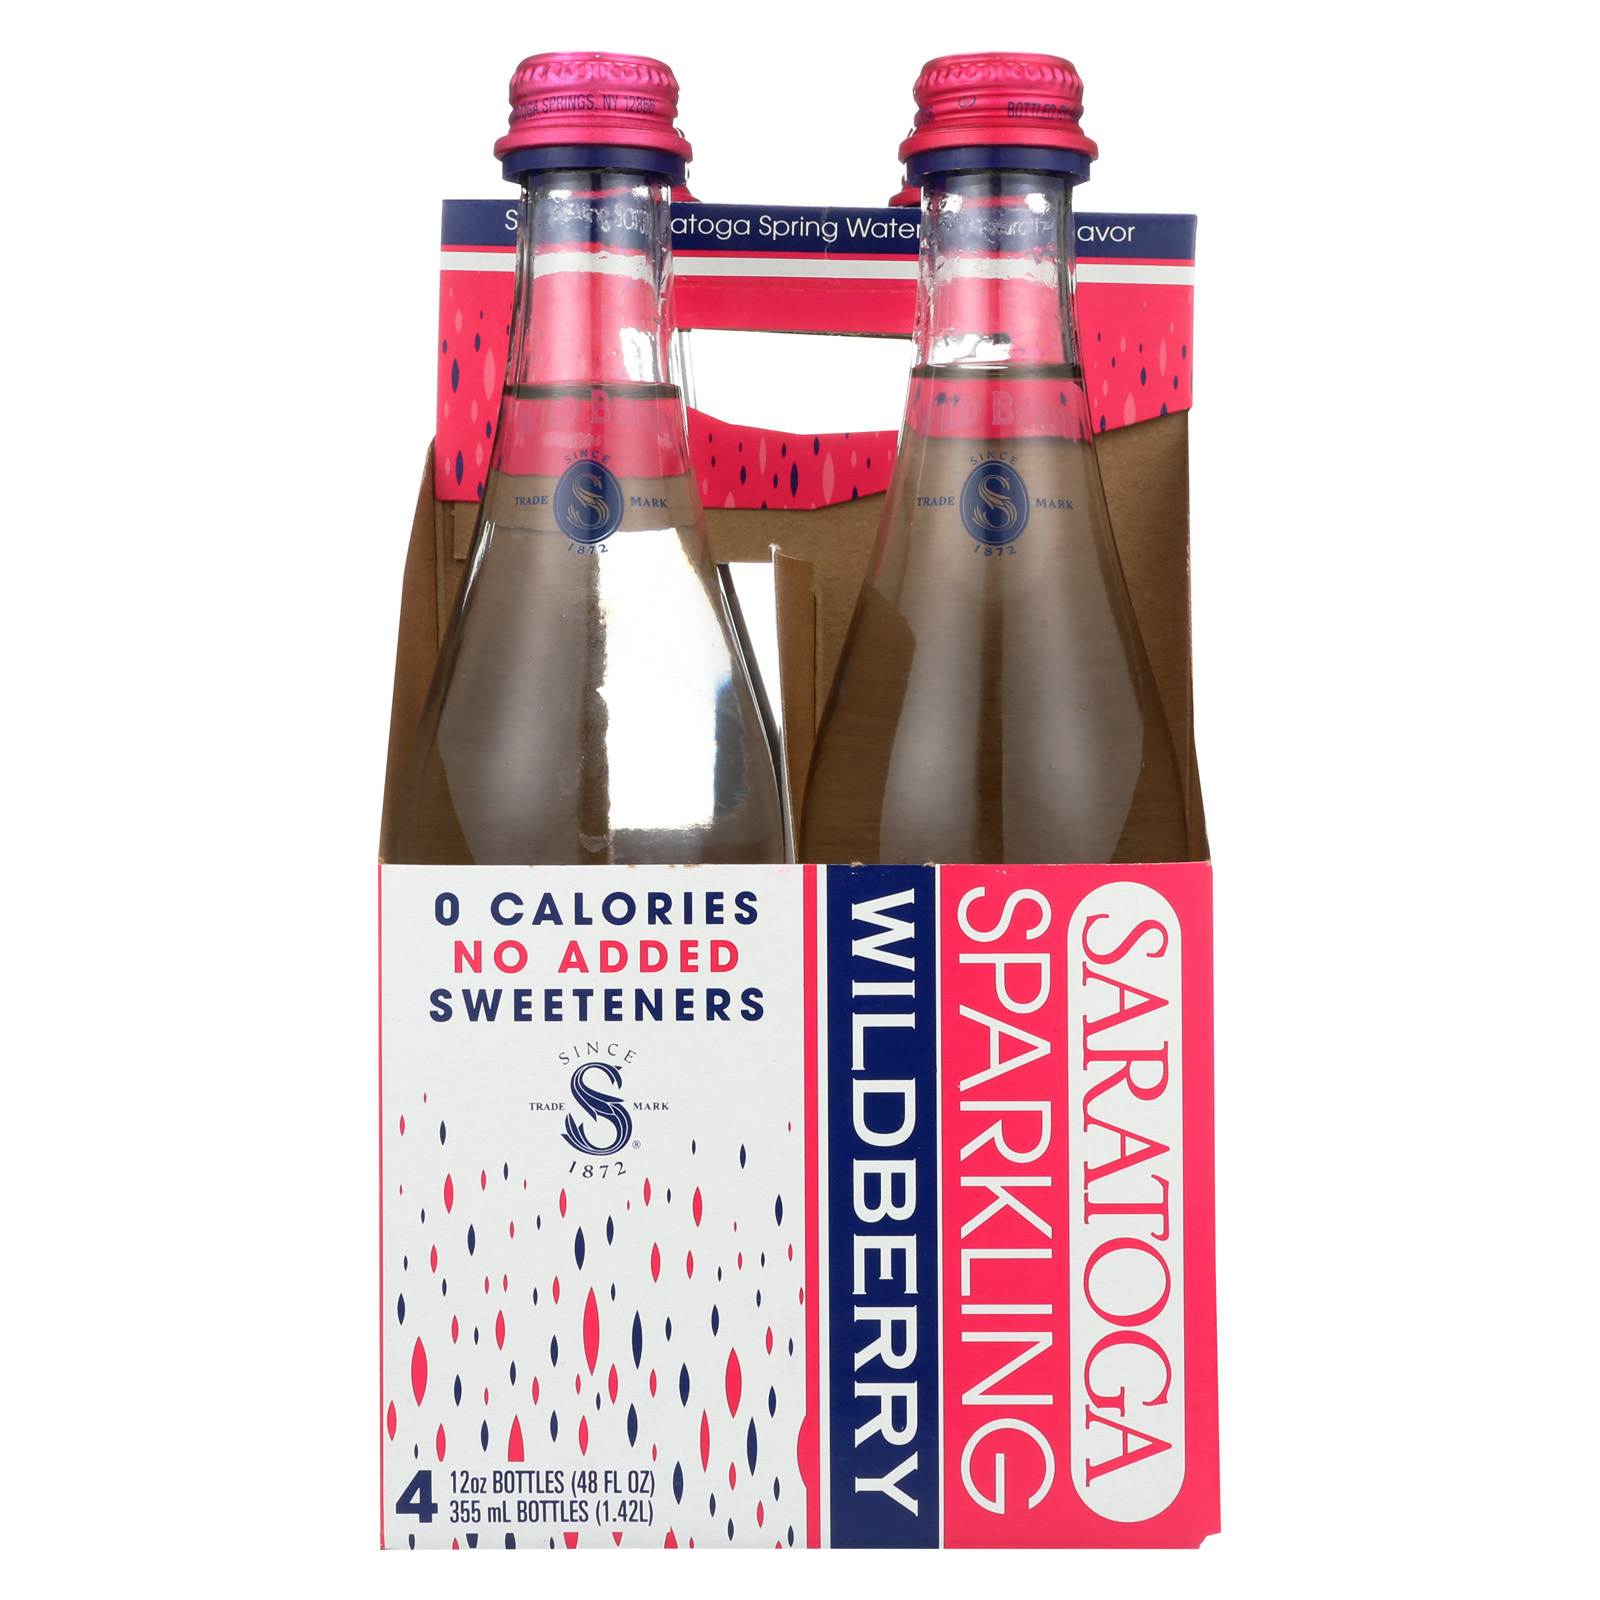 Saratoga Springs Water Sparkling Water - Wild Berry - Case of 6 - 12 Fl oz.